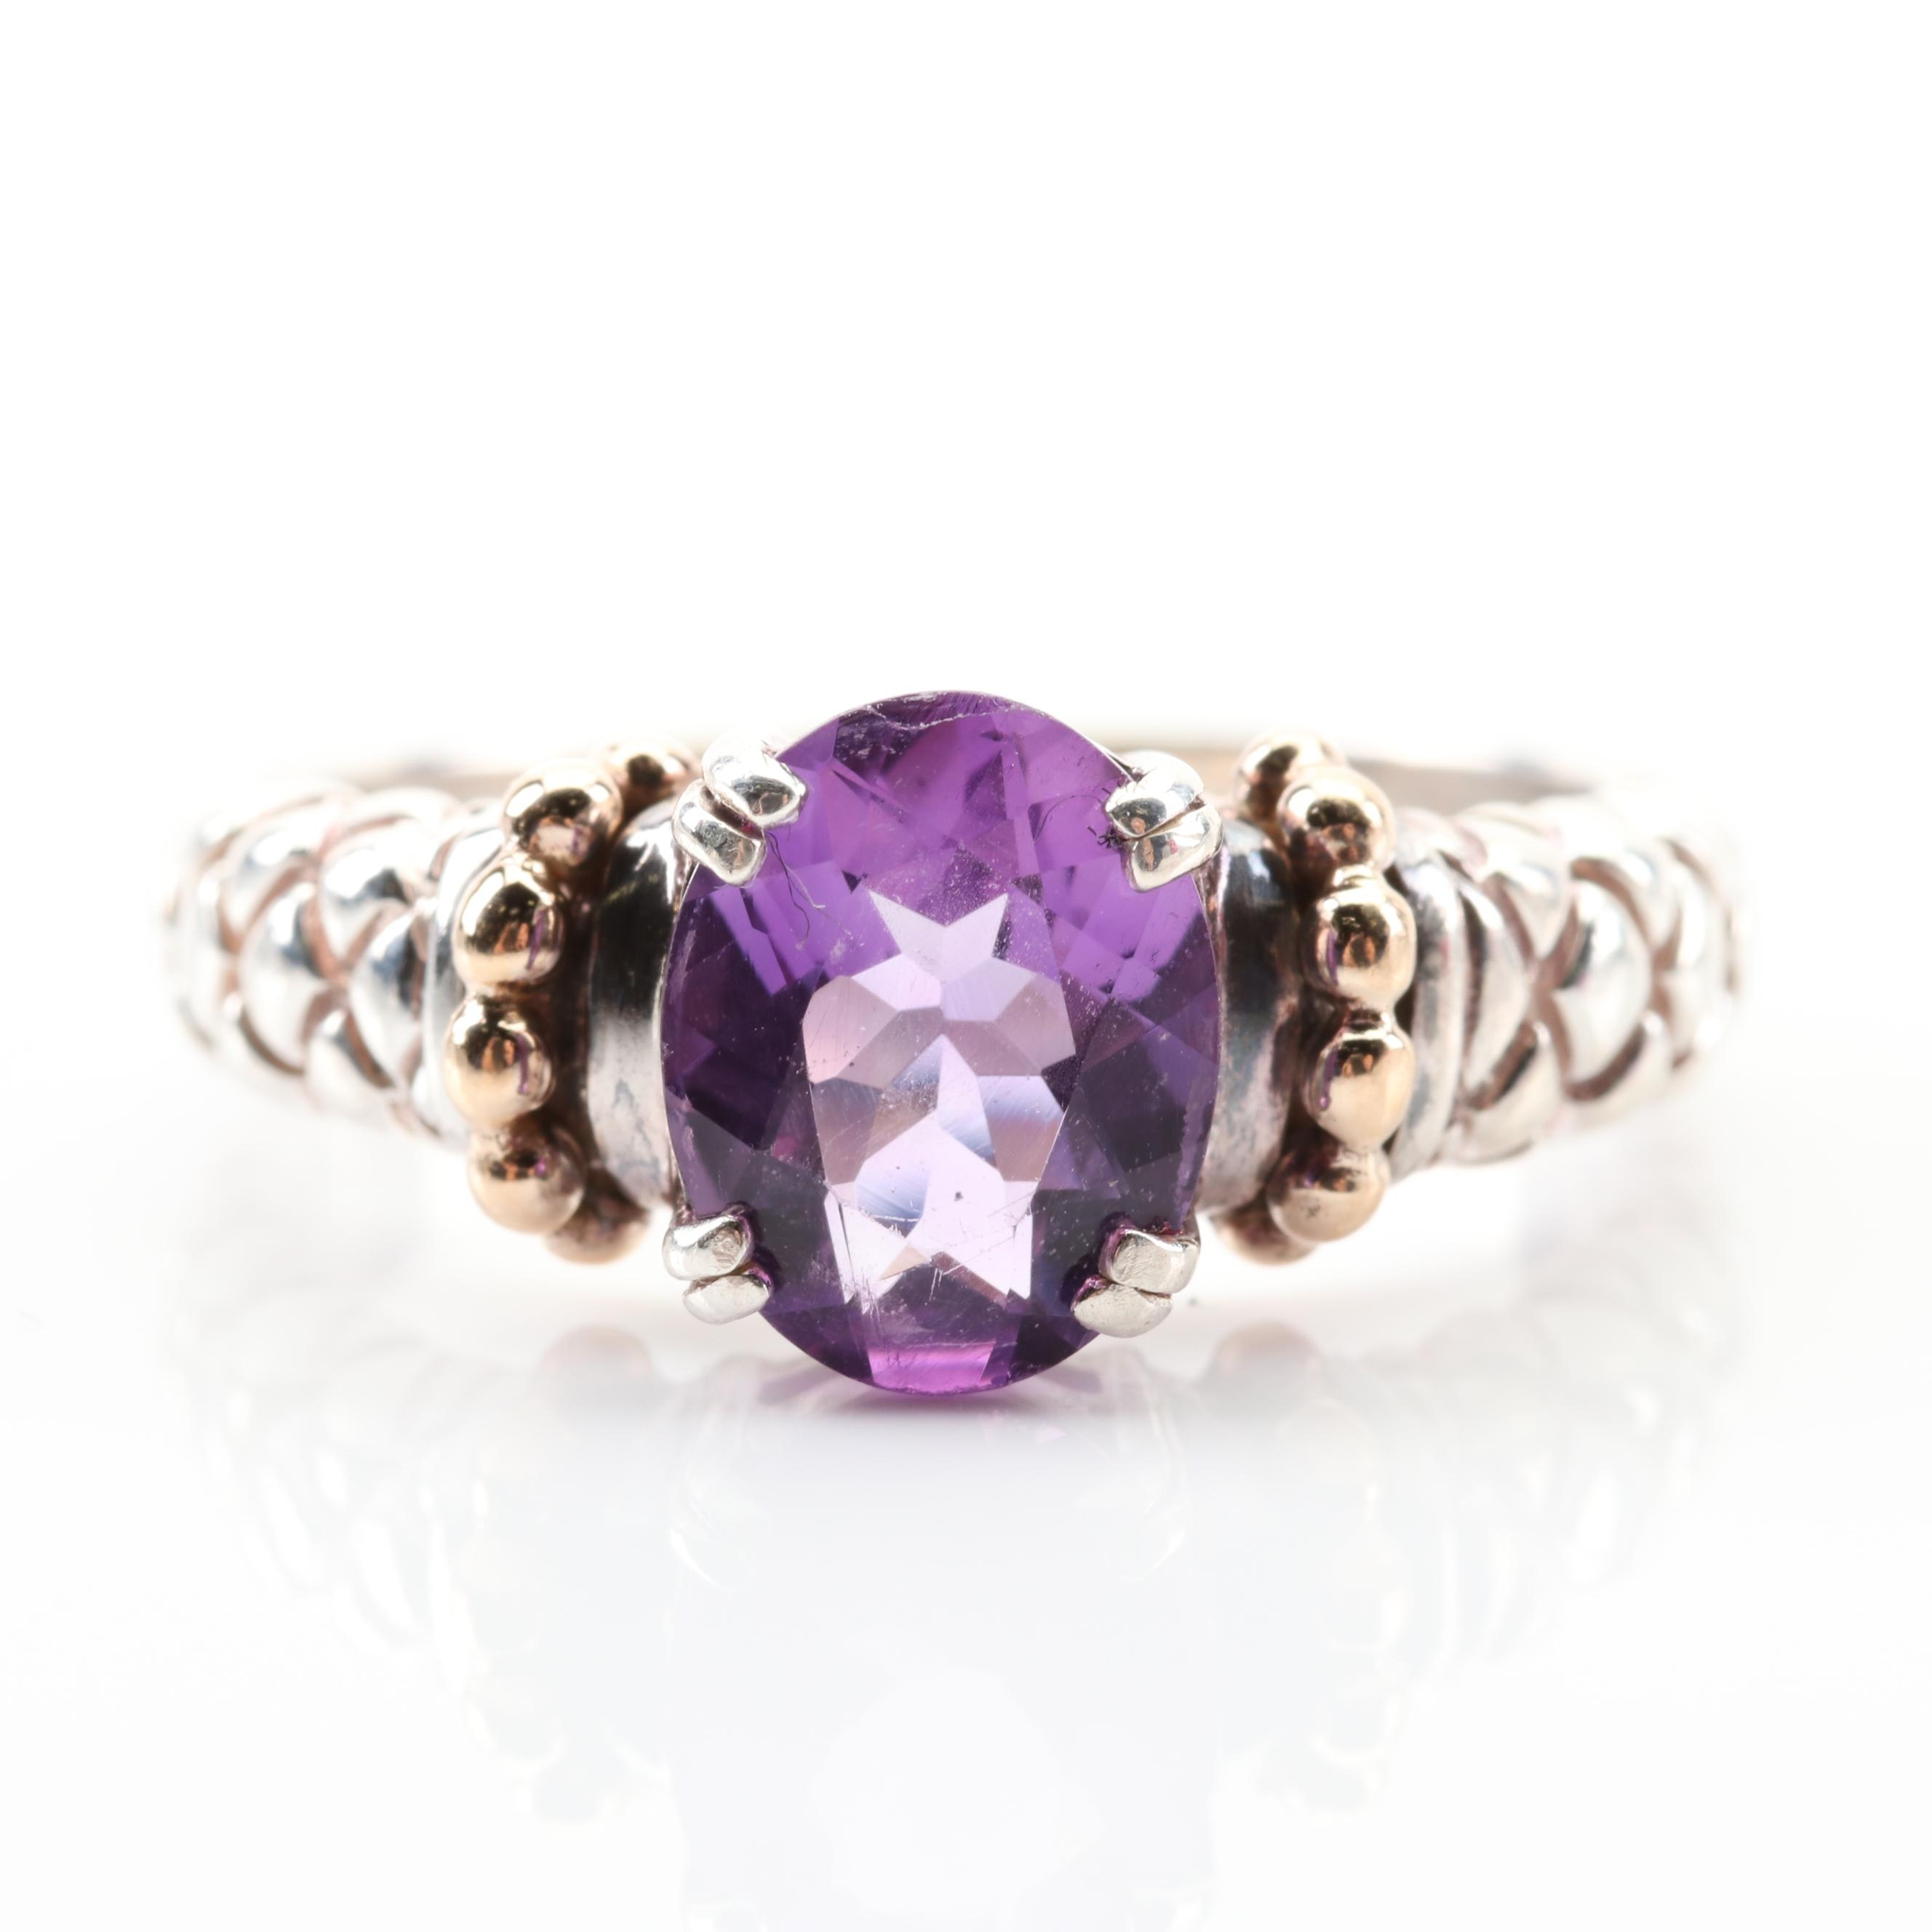 Clyde Duneier Sterling and 14K Yellow Gold Amethyst Ring with Beaded Accents